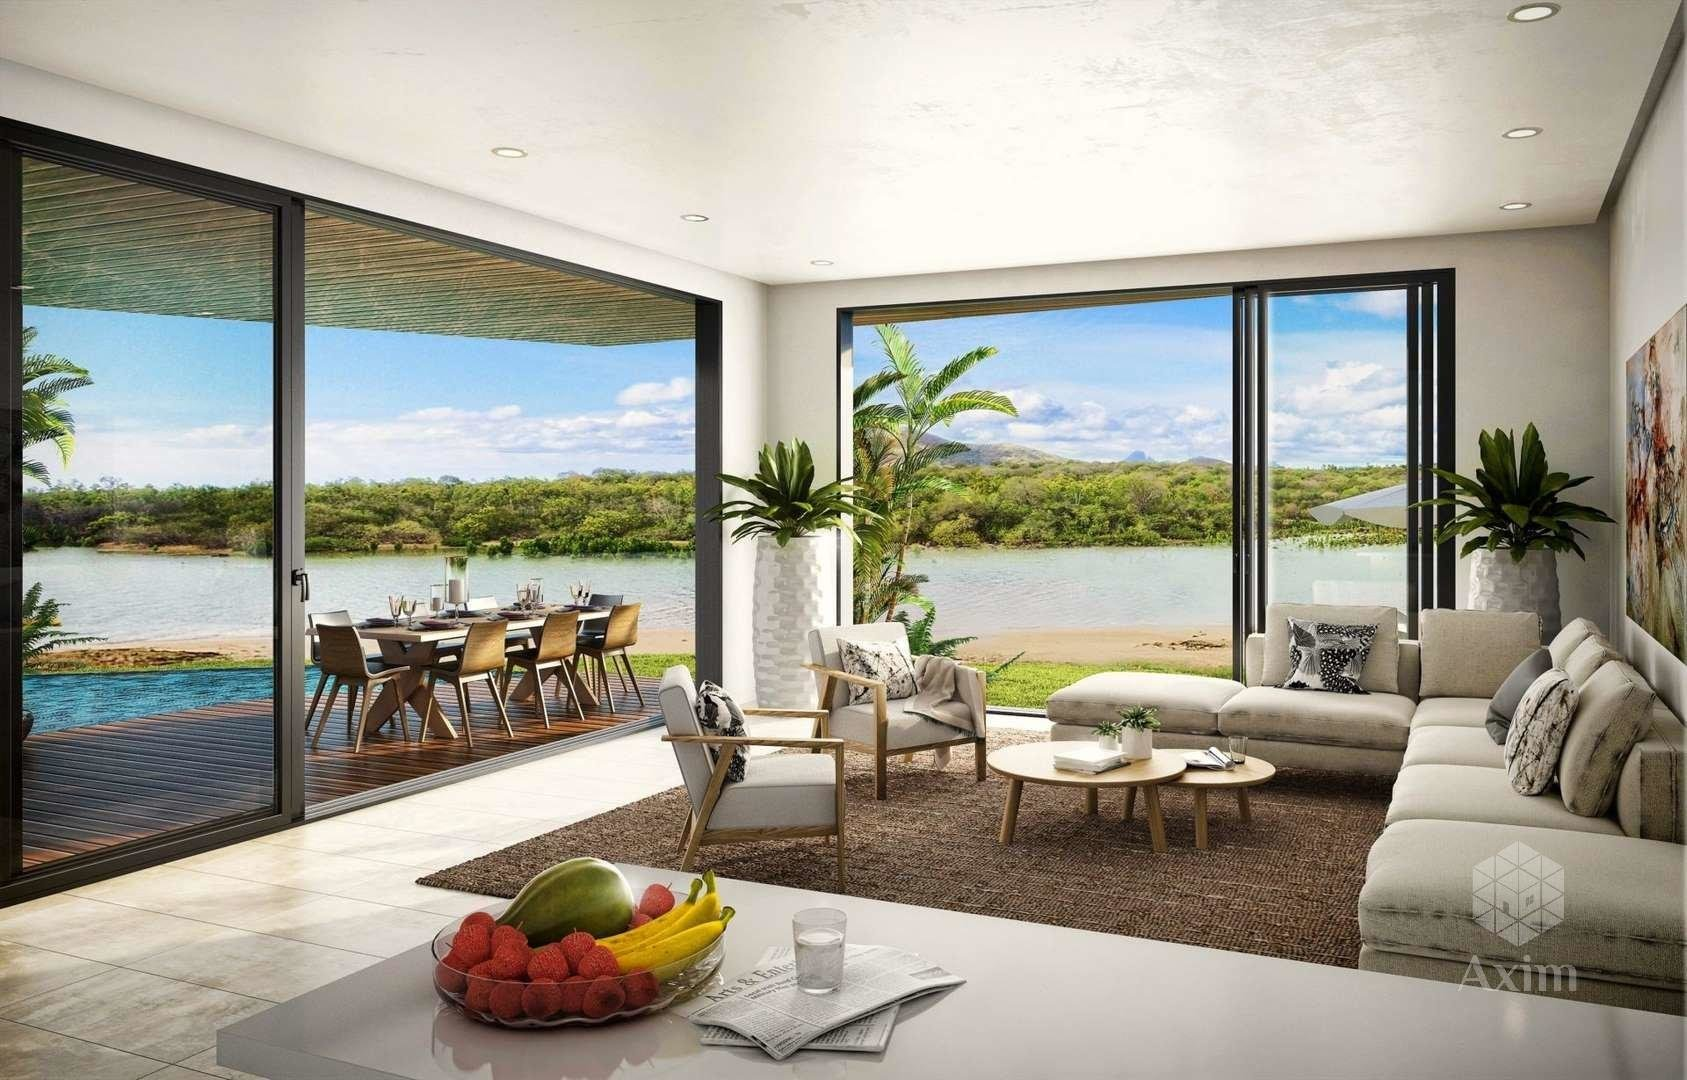 Mauritius - Luxury waterfront apartment